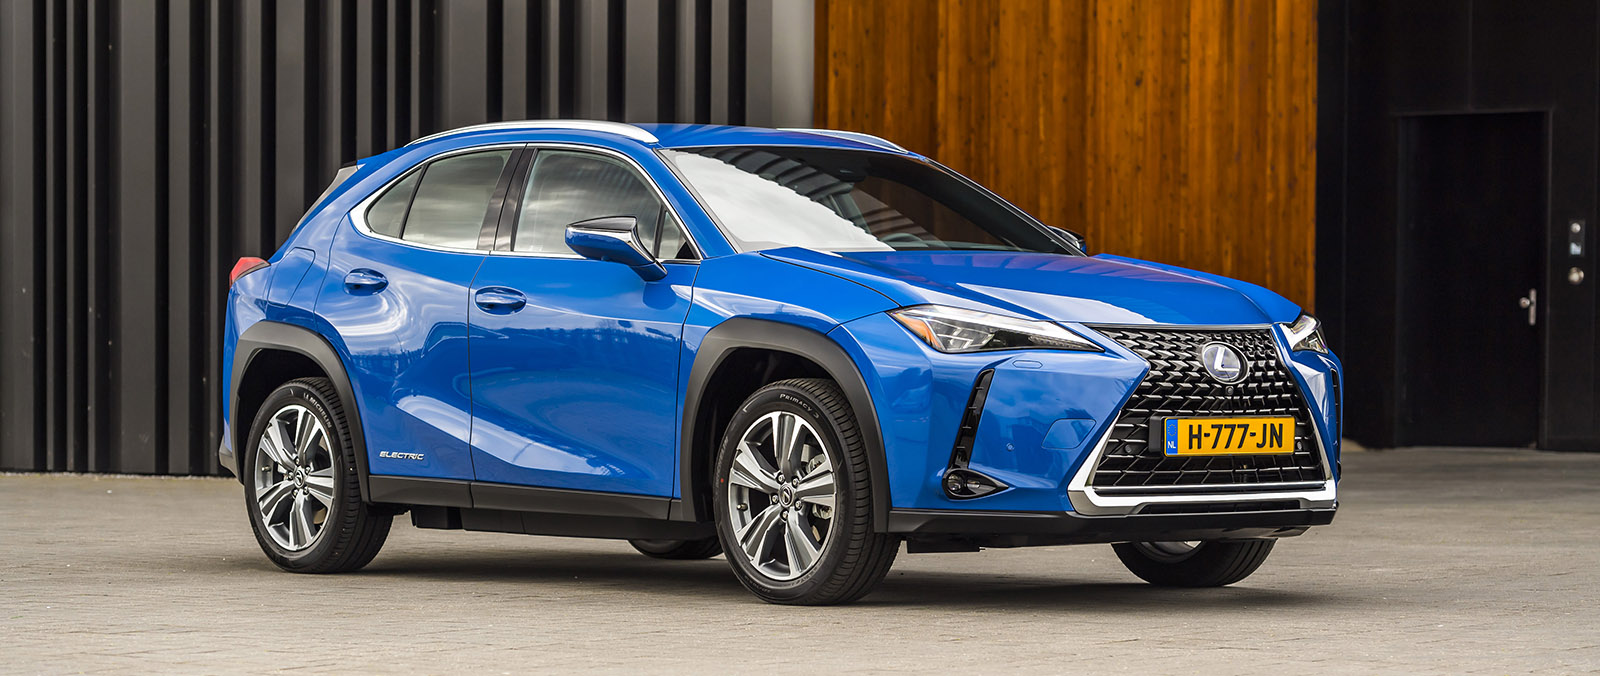 De Lexus UX 300e Electric